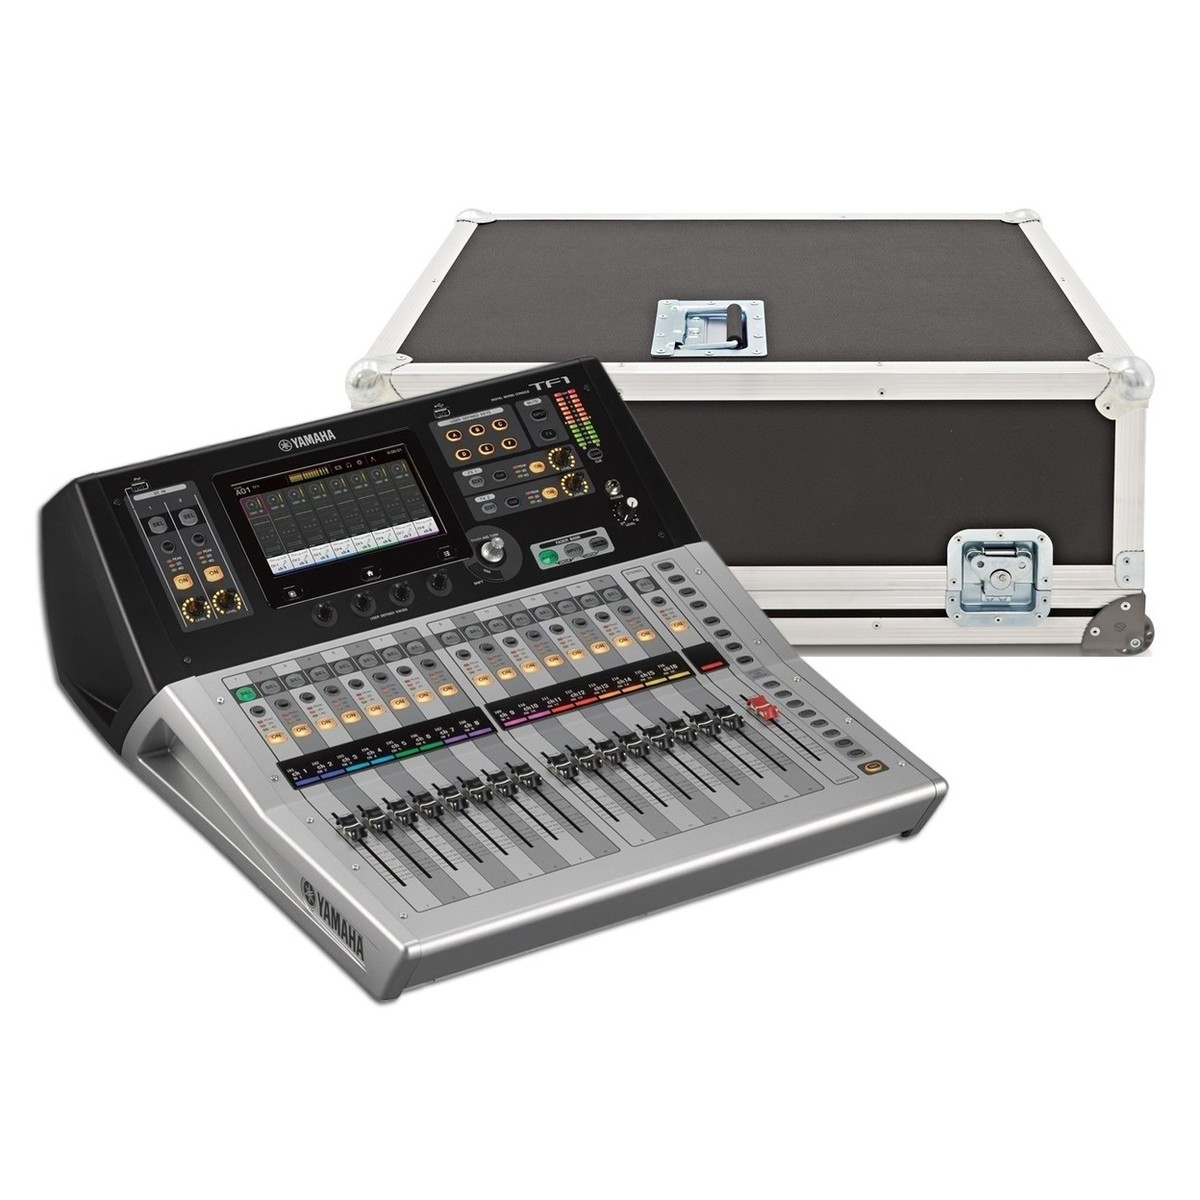 yamaha touchflow tf1 16 channel digital mixer with case at. Black Bedroom Furniture Sets. Home Design Ideas